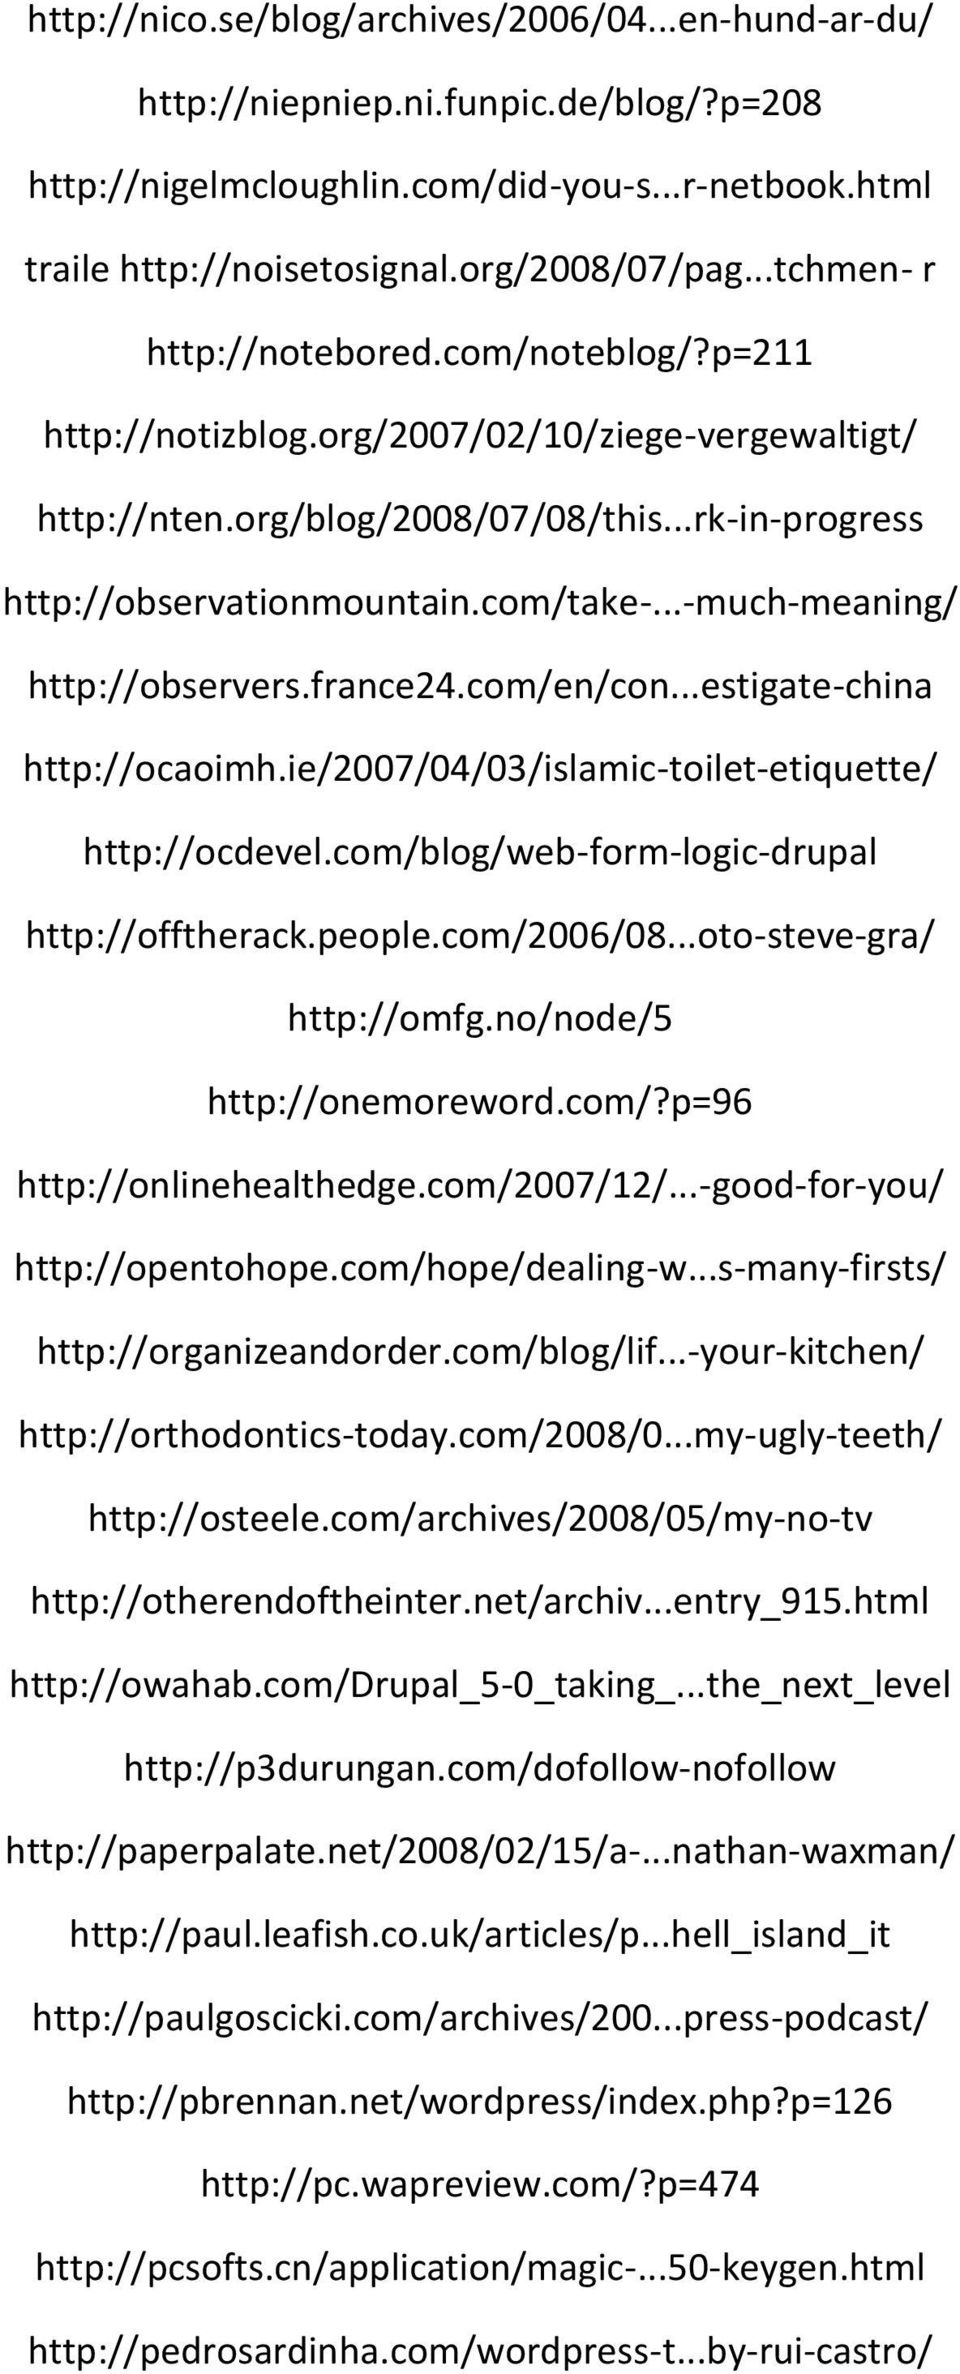 ..-much-meaning/ http://observers.france24.com/en/con...estigate-china http://ocaoimh.ie/2007/04/03/islamic-toilet-etiquette/ http://ocdevel.com/blog/web-form-logic-drupal http://offtherack.people.